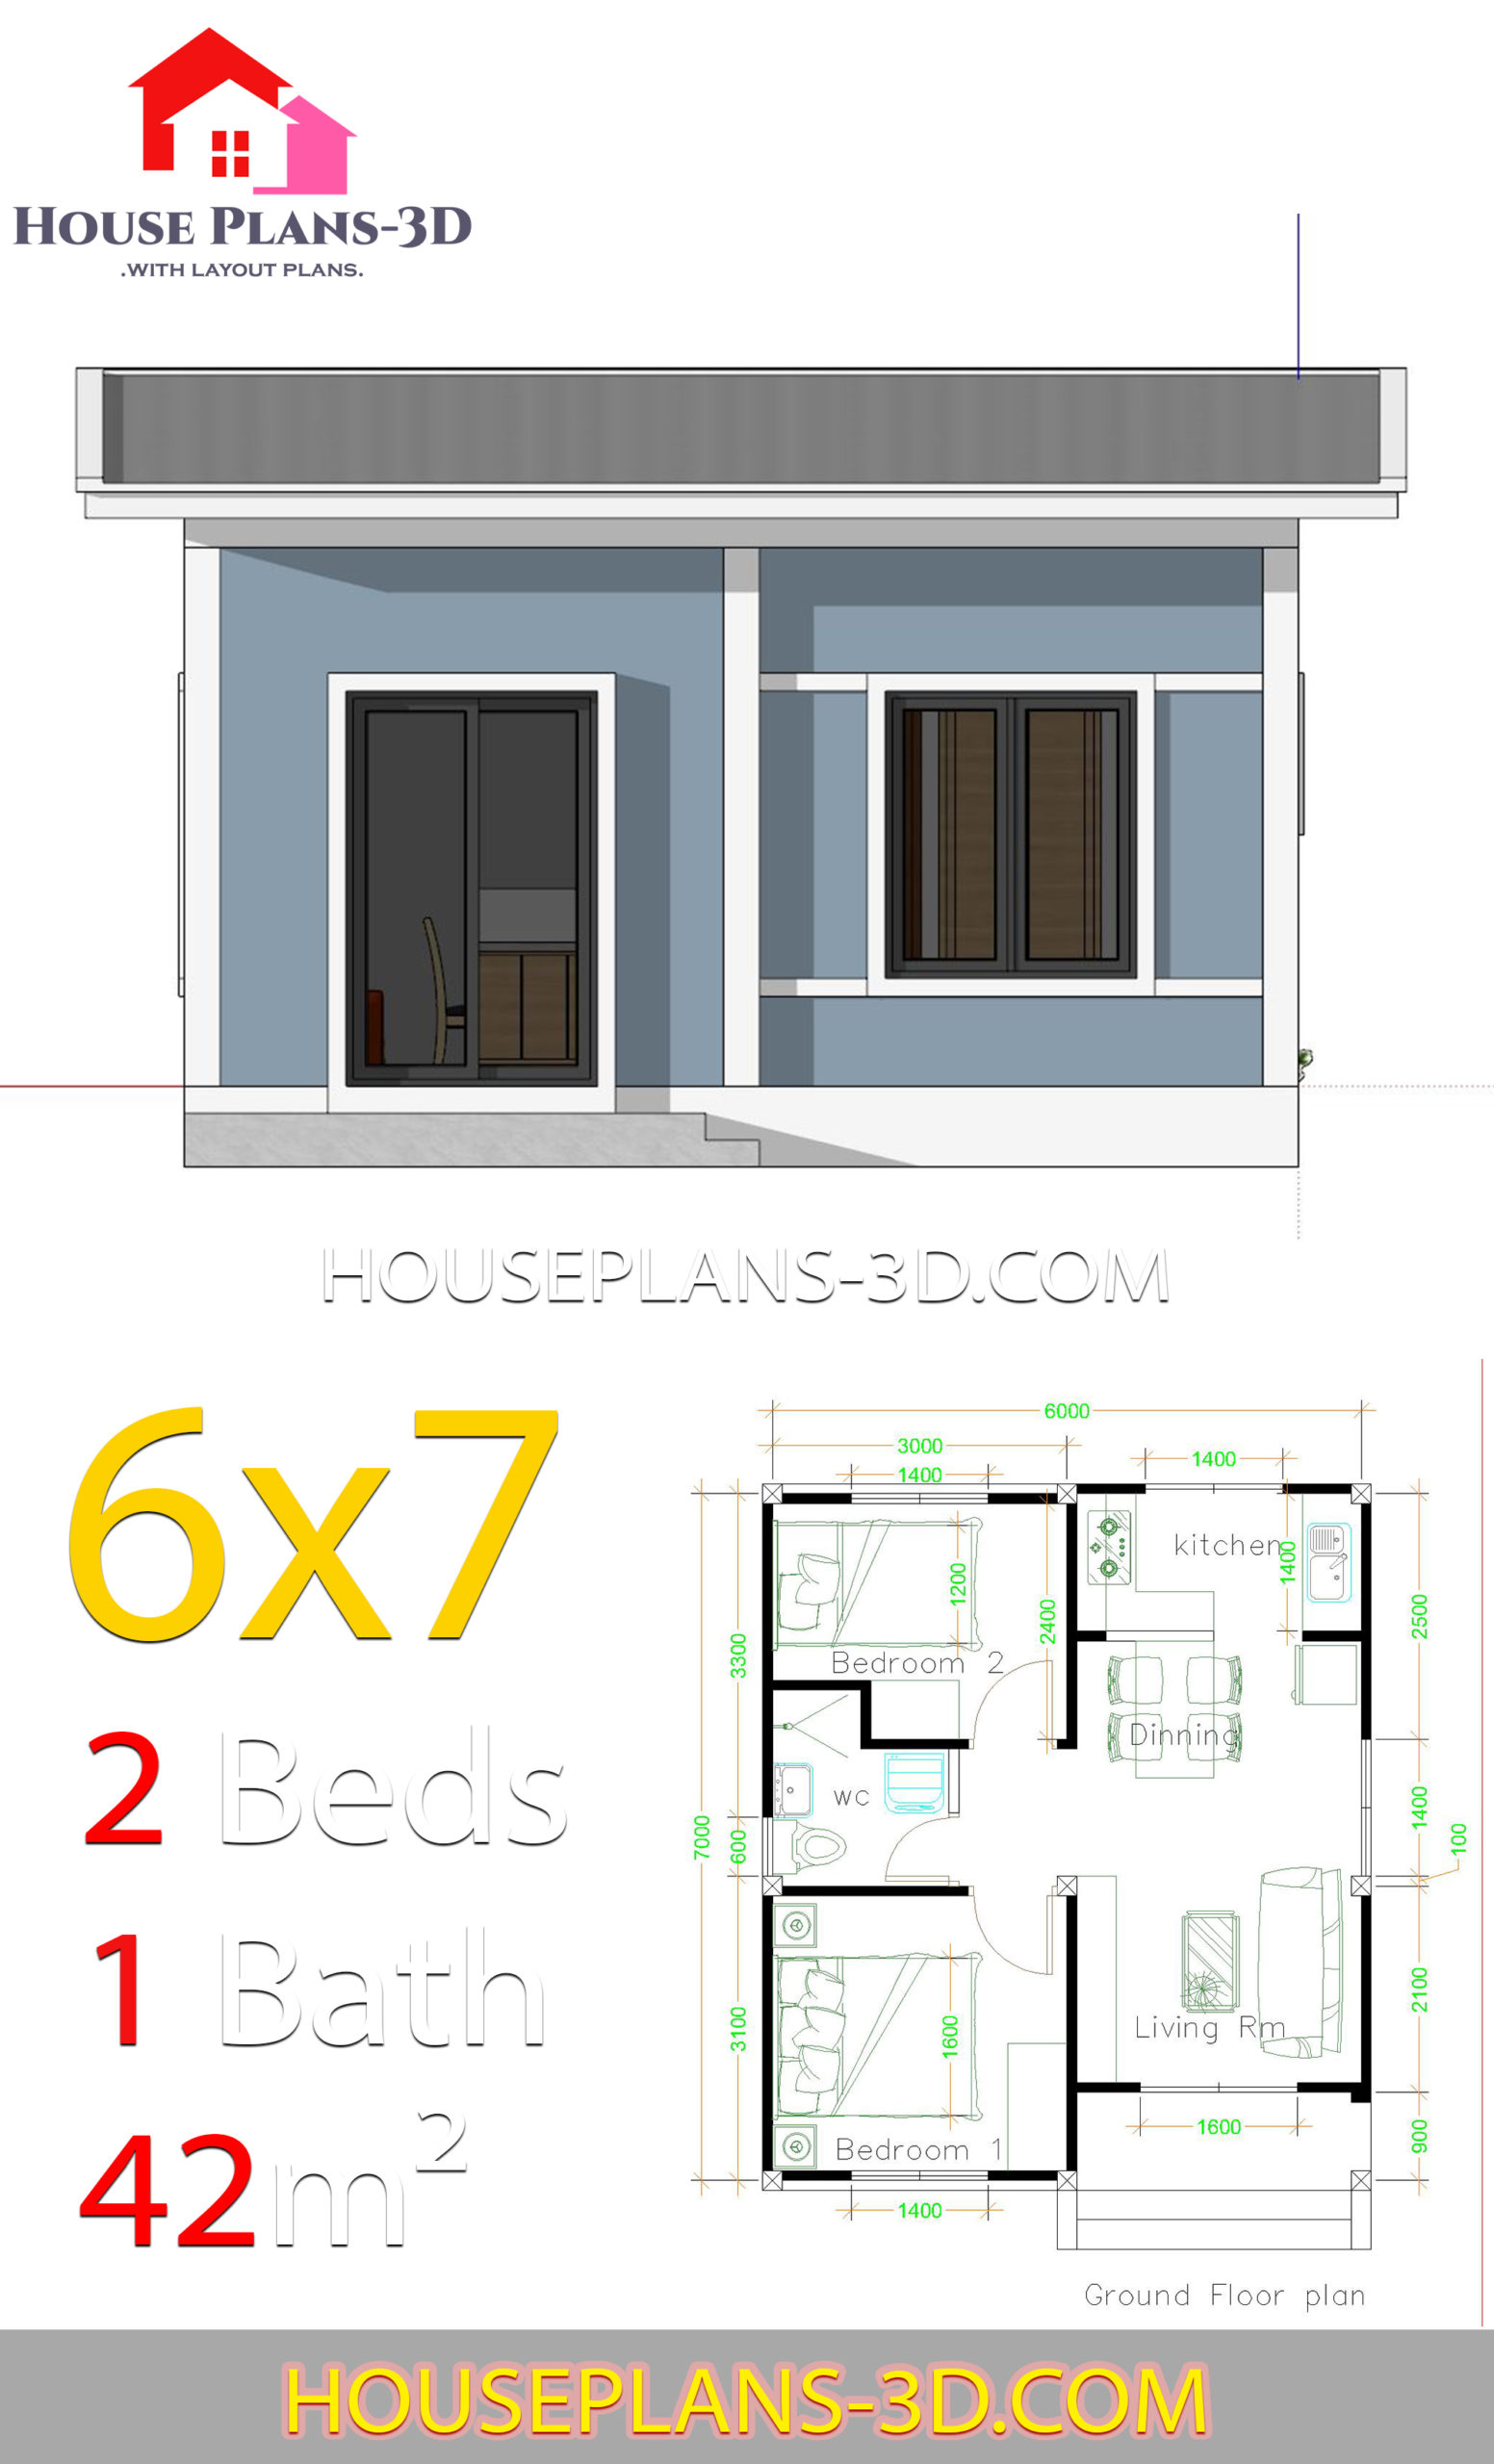 Simple House Plans 6x7 With 2 Bedrooms Shed Roof House Plans 3d